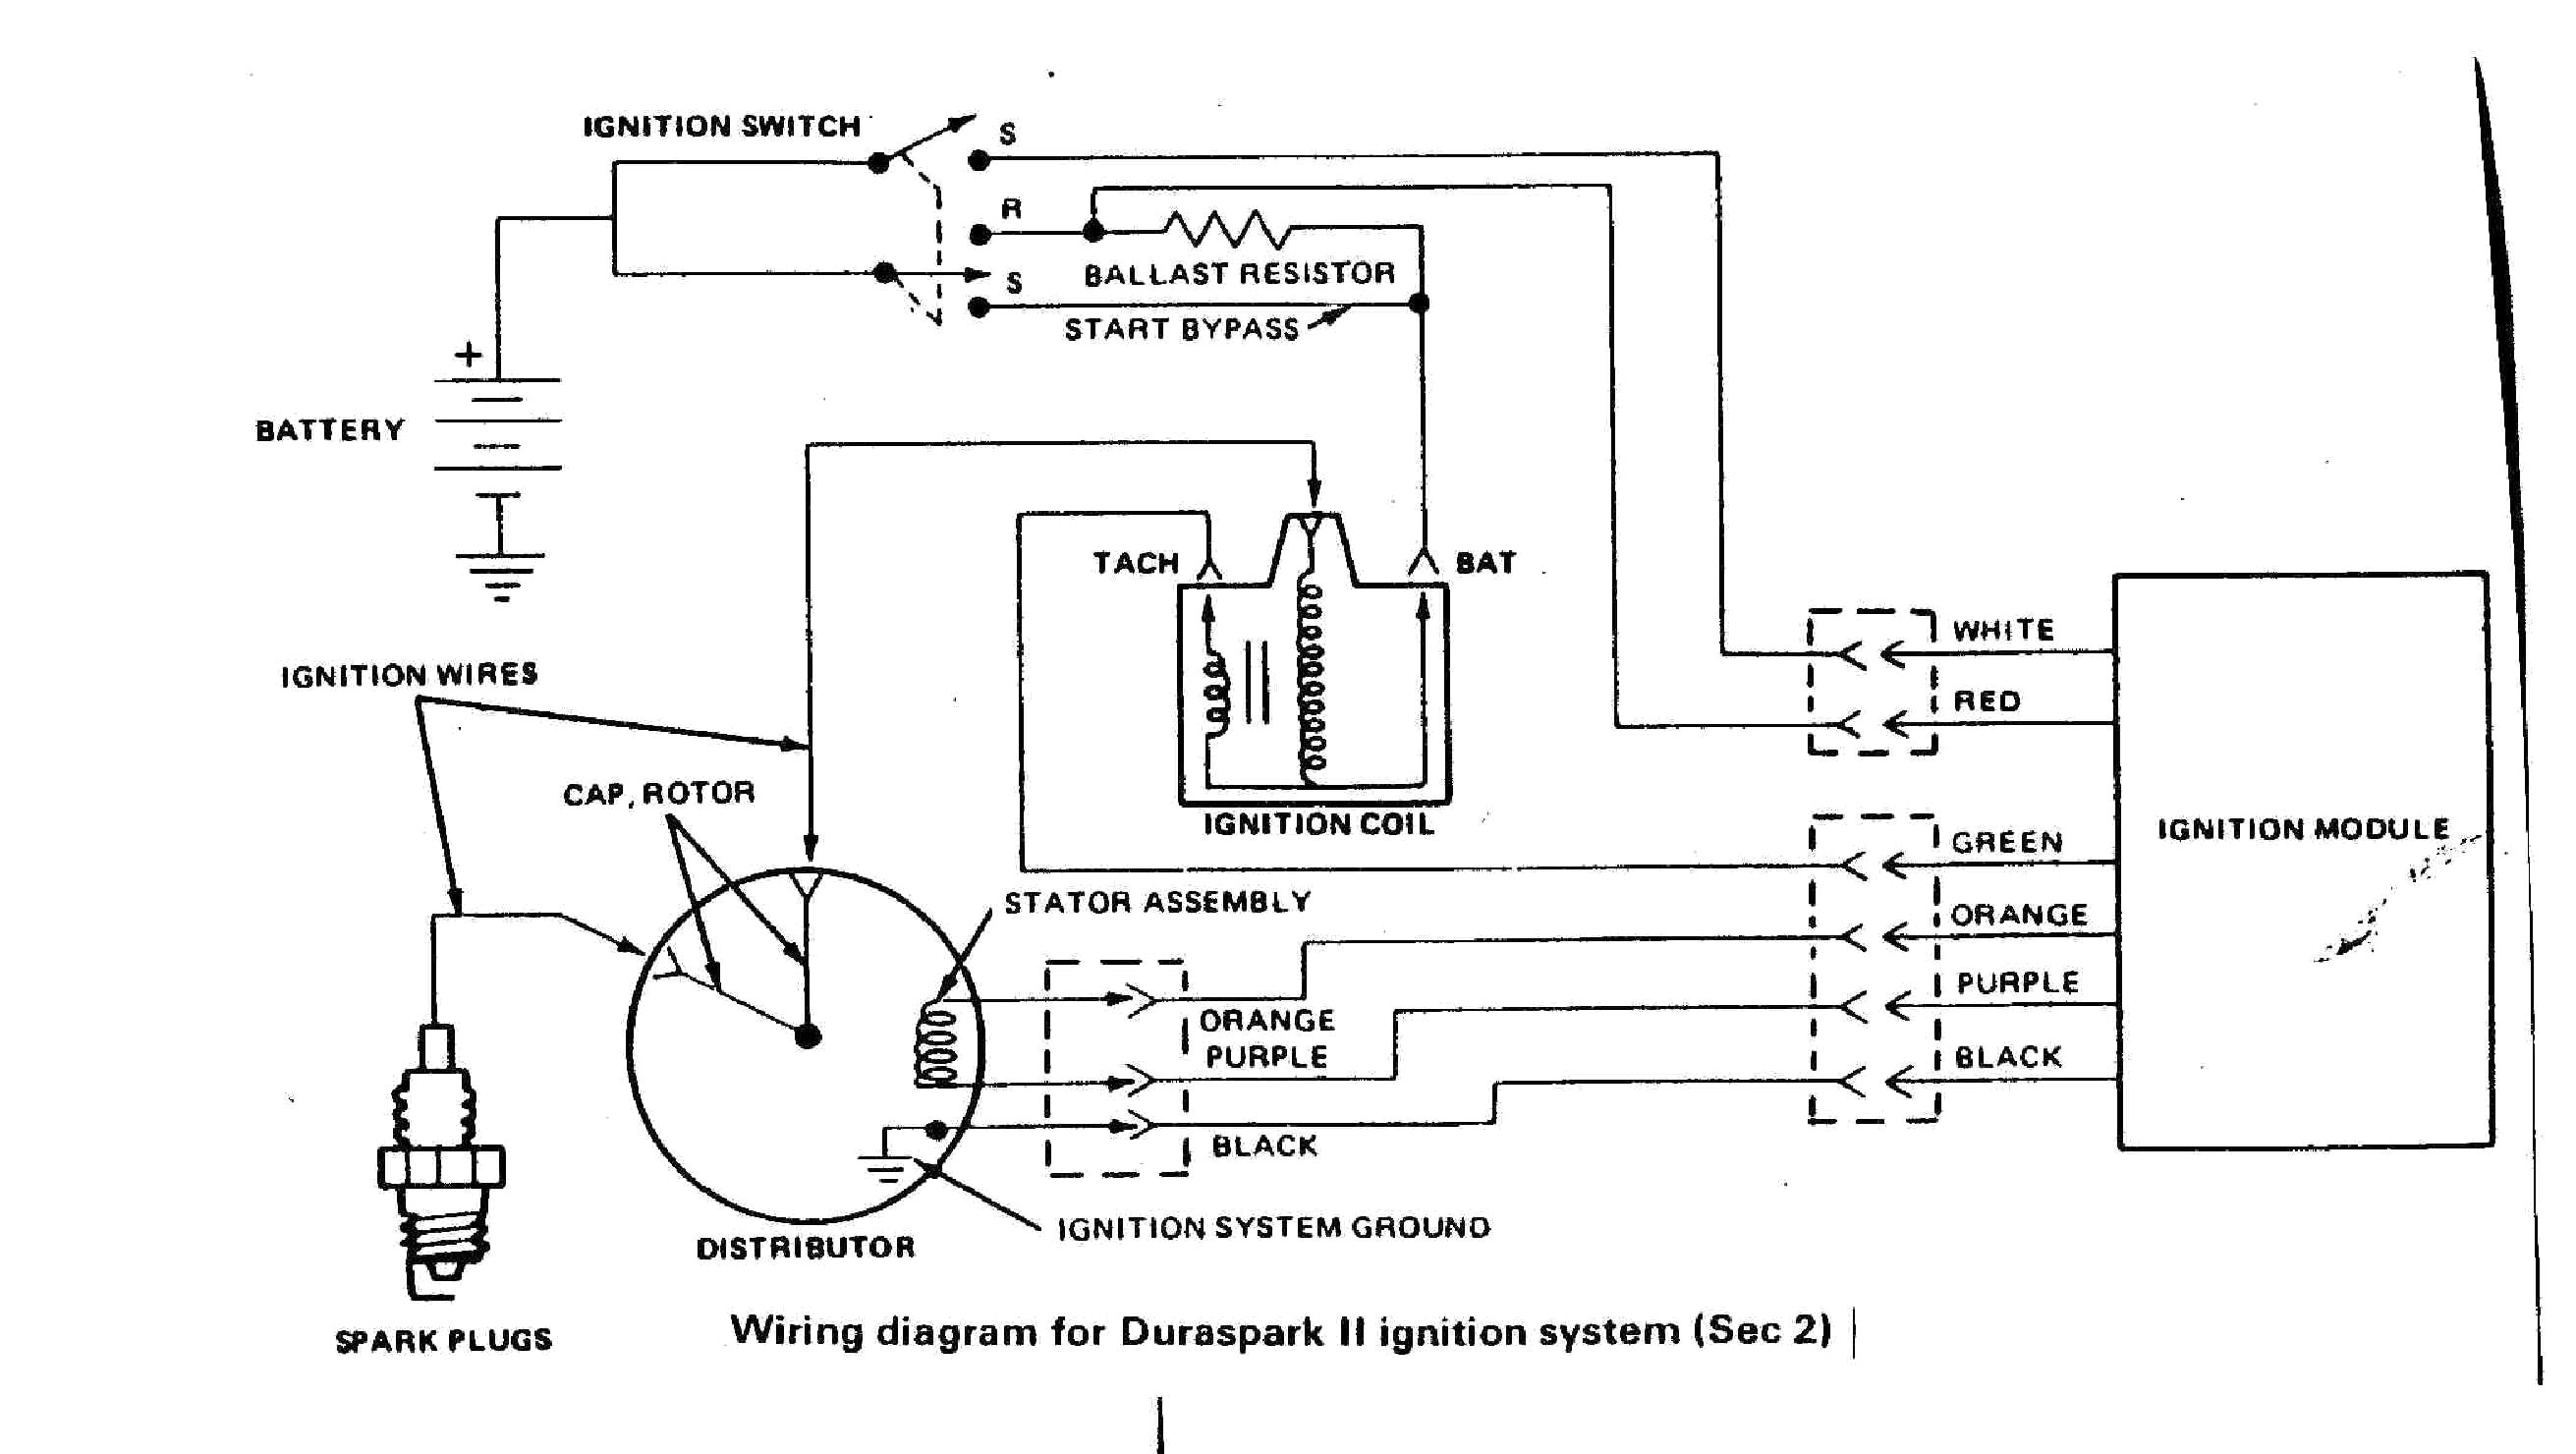 ford tractor ignition switch wiring diagram Download-ford tractor ignition switch wiring diagram Collection Ford Tractor Ignition Switch Wiring Diagram Unique ford 12-t